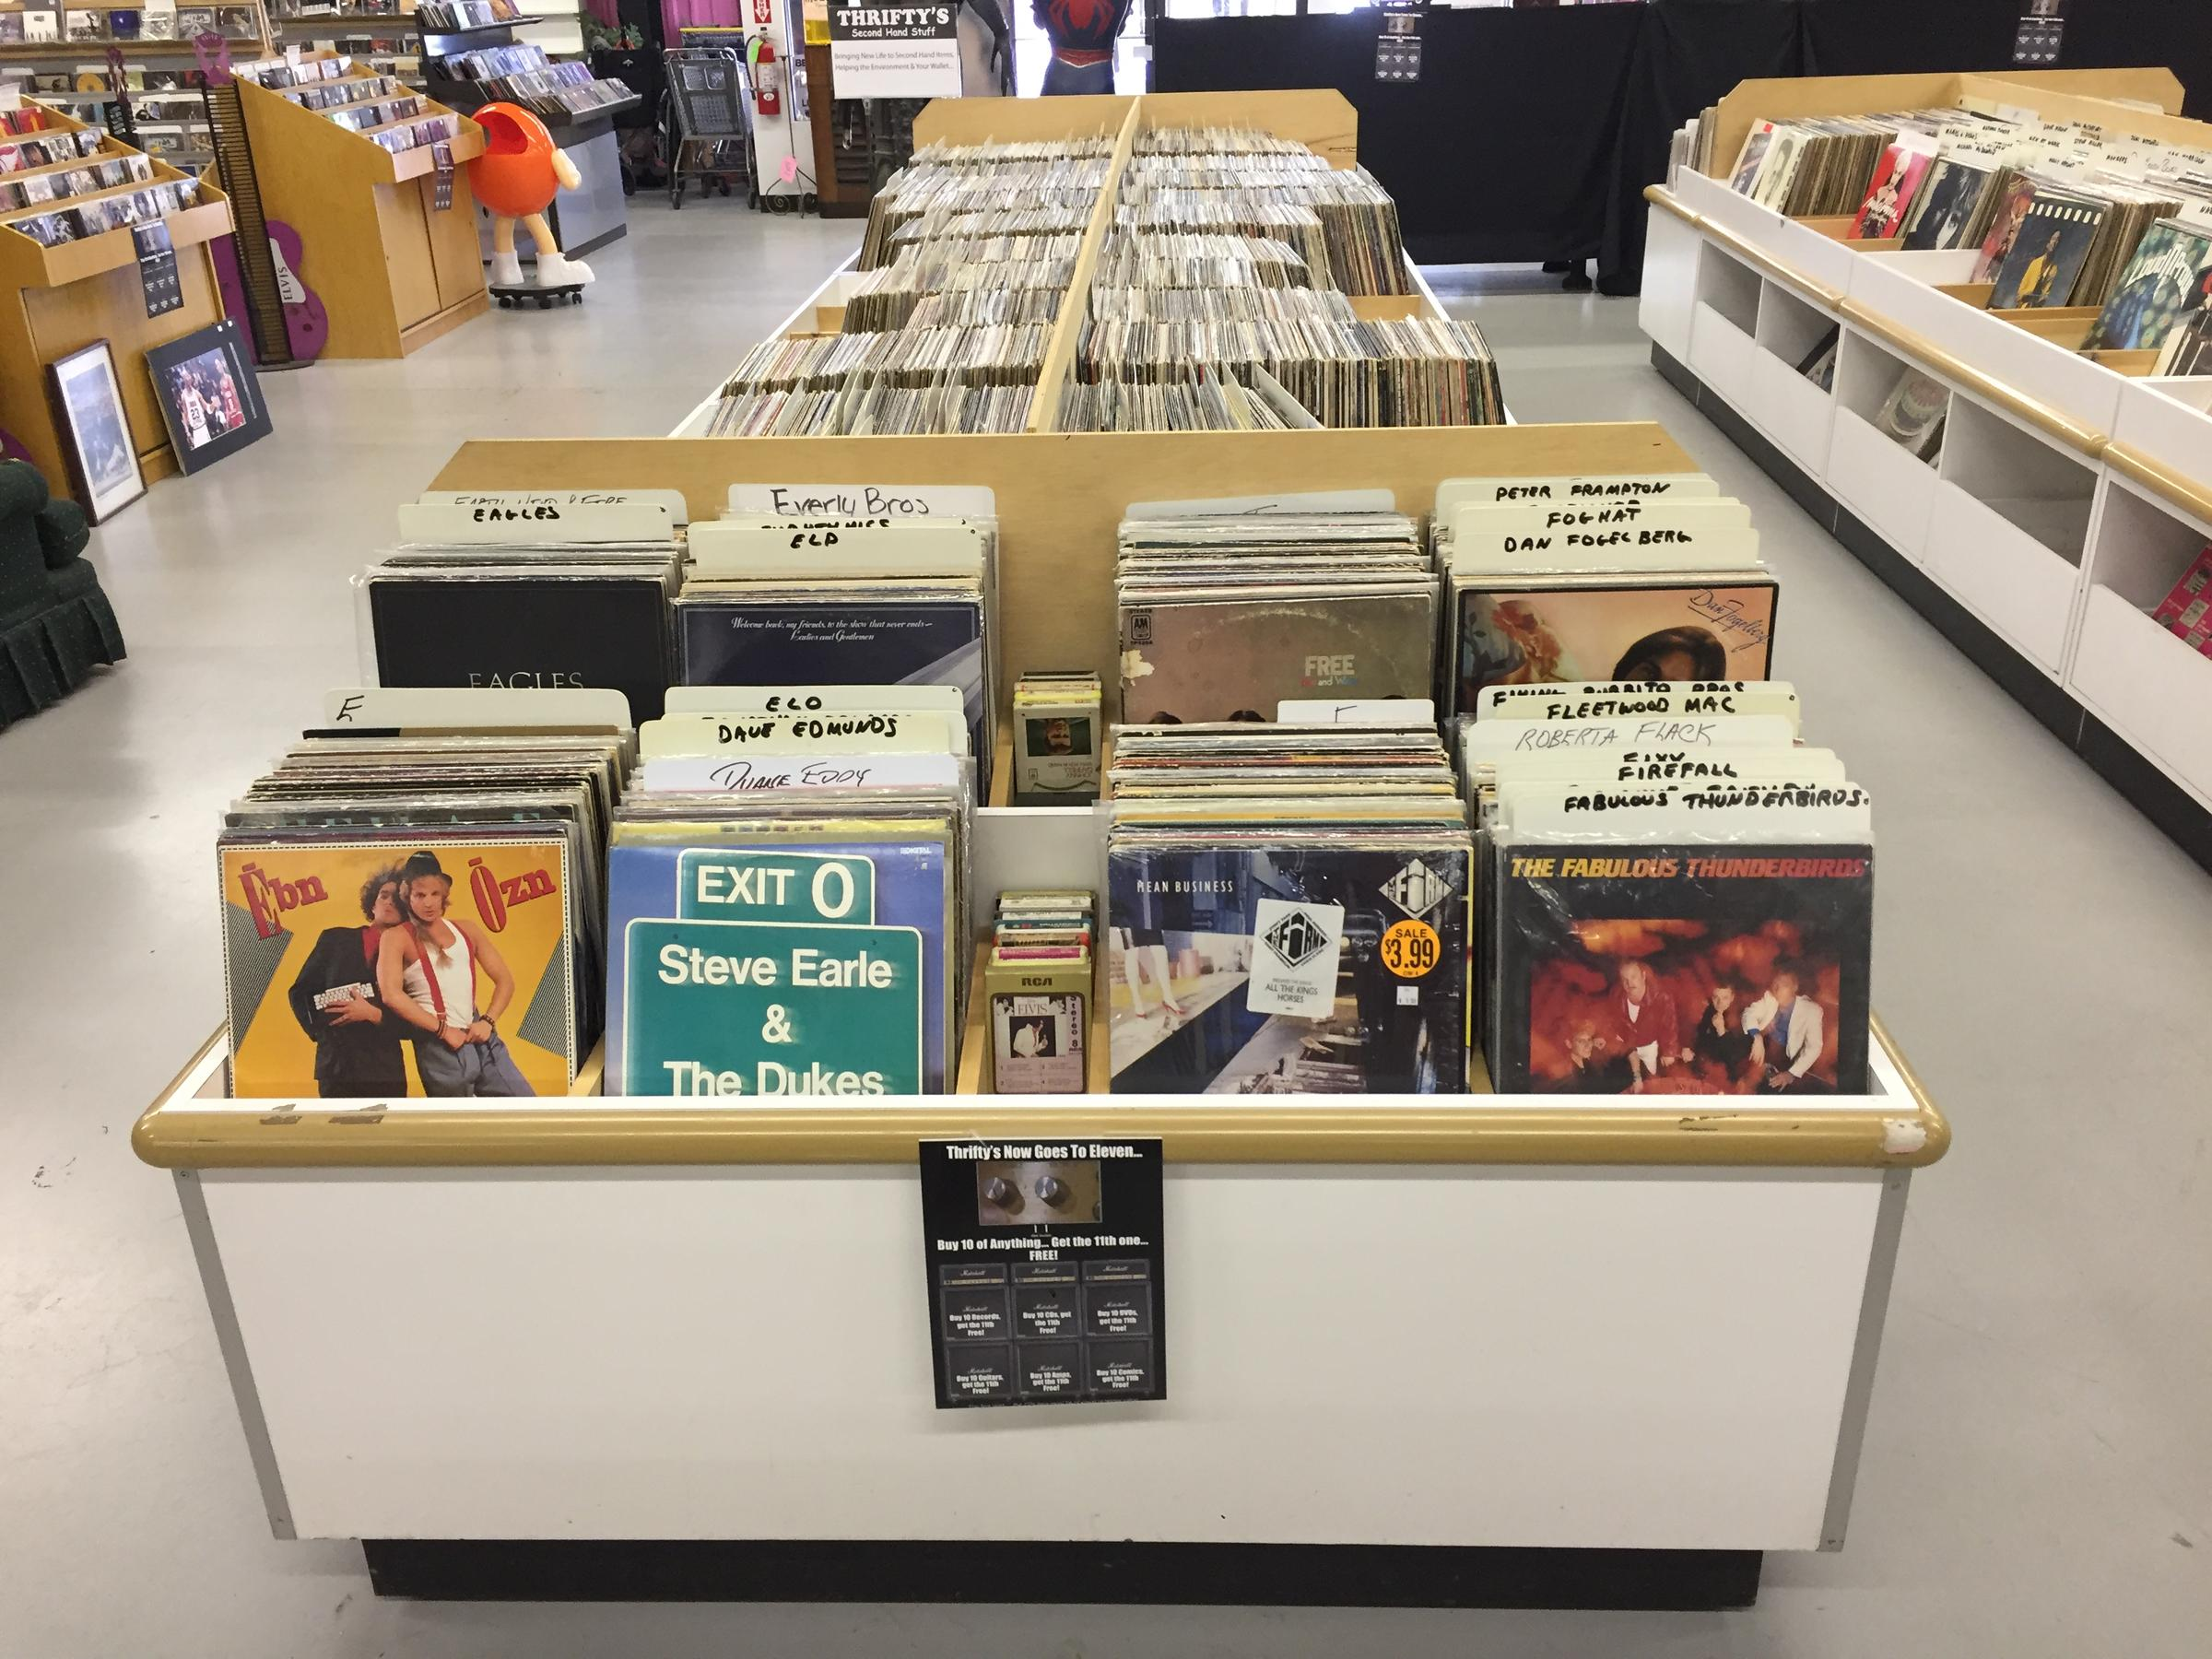 Vintage Vinyl Is Big Business for Second-Hand Store in